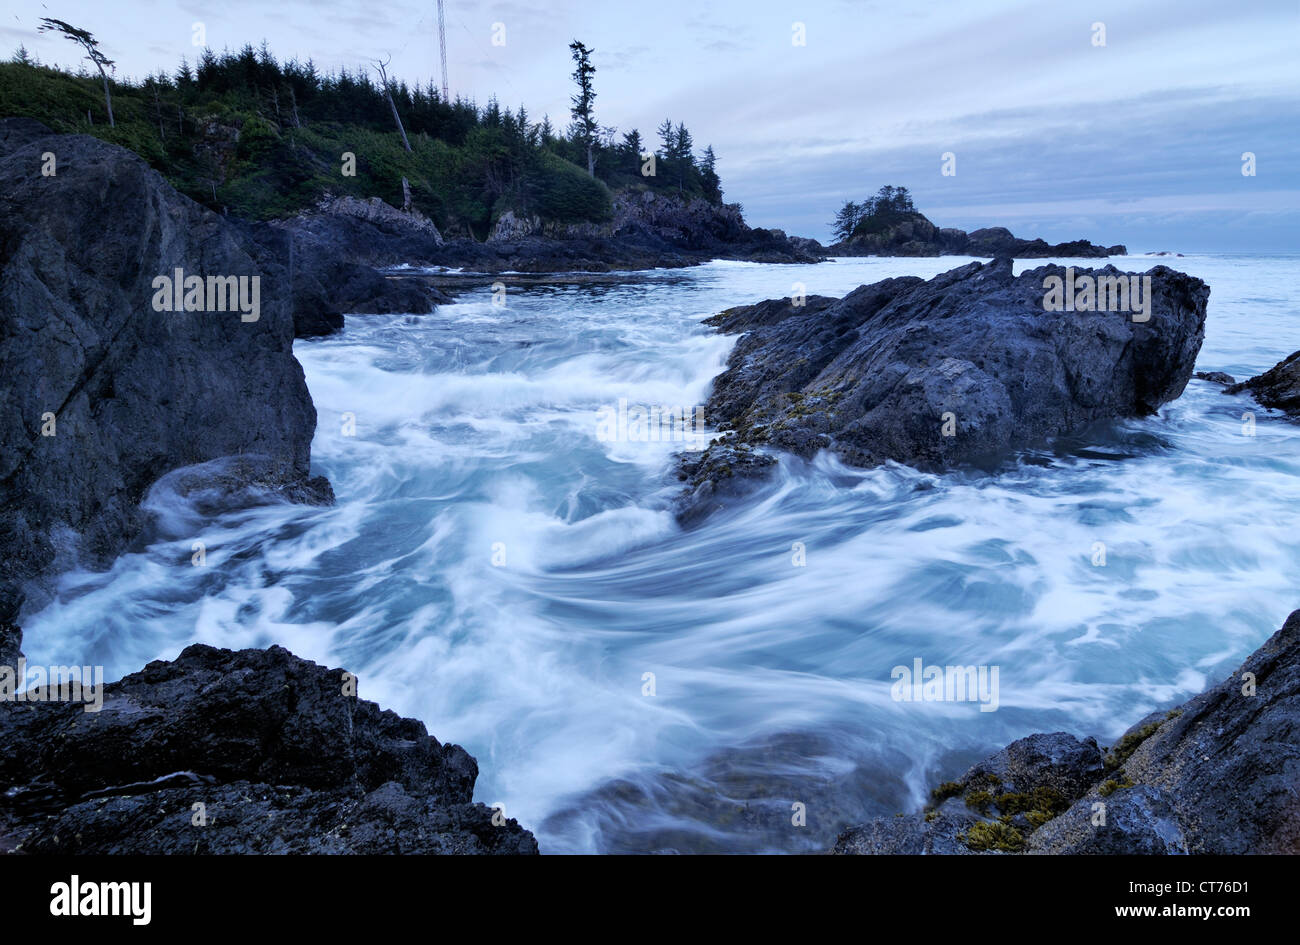 rocks on coast at pacific rim national park - Stock Image